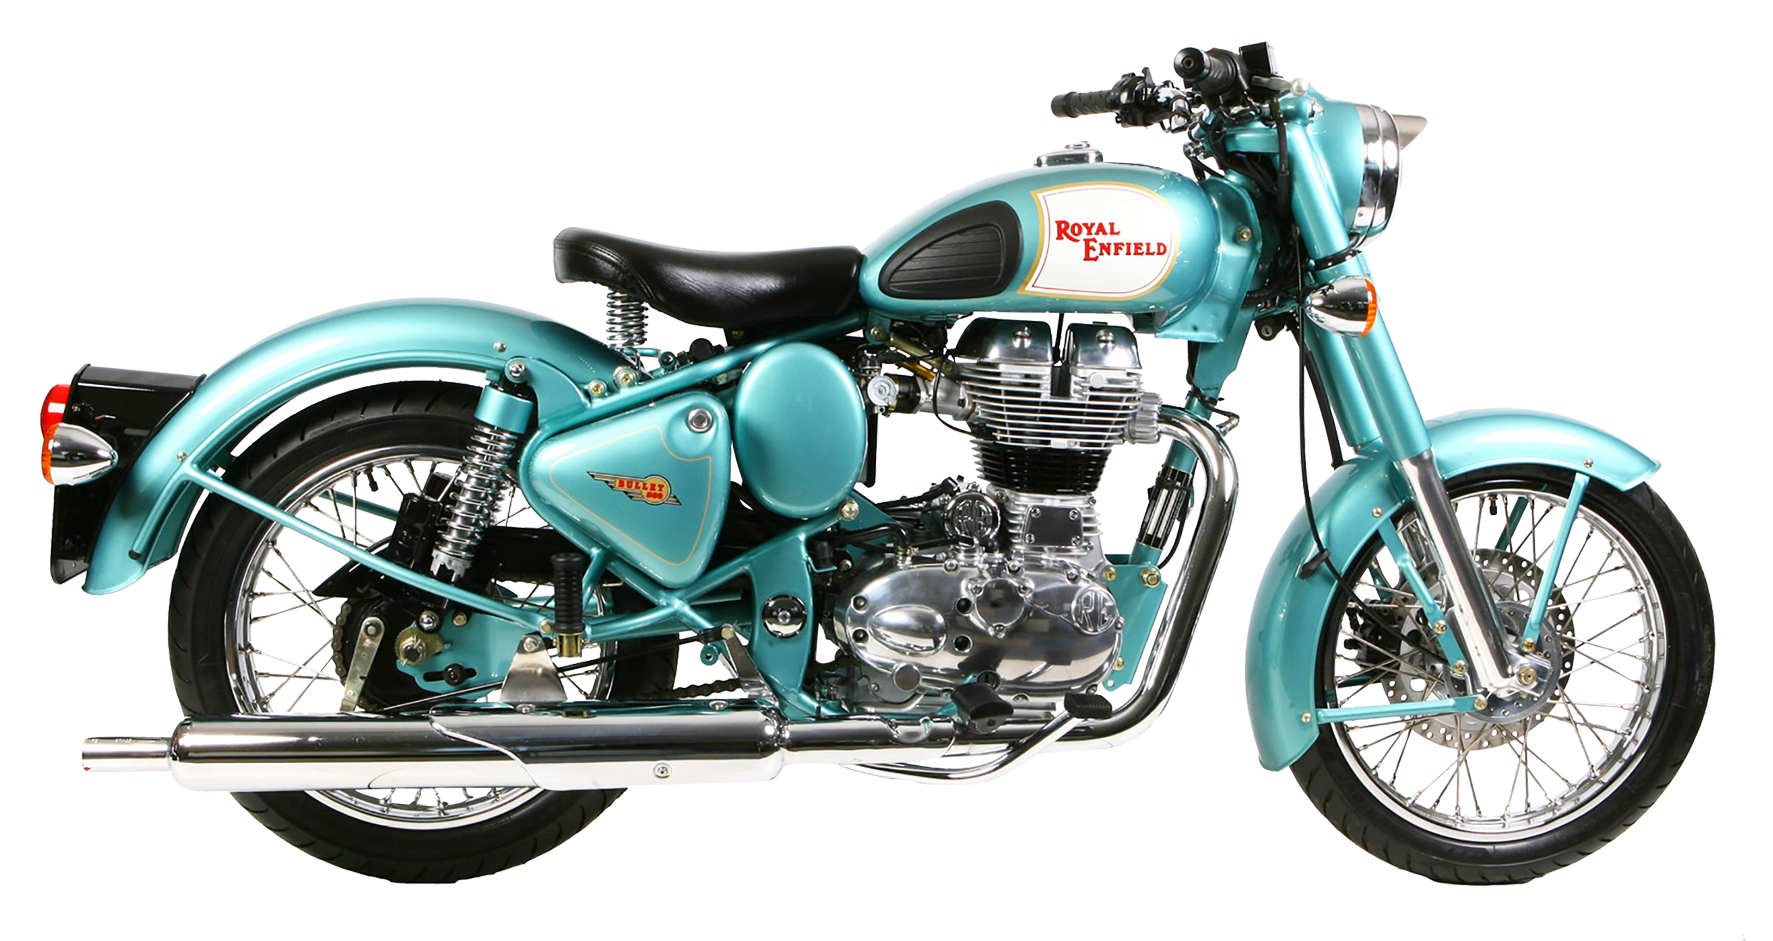 Royal enfield png image. Clipart bike classic